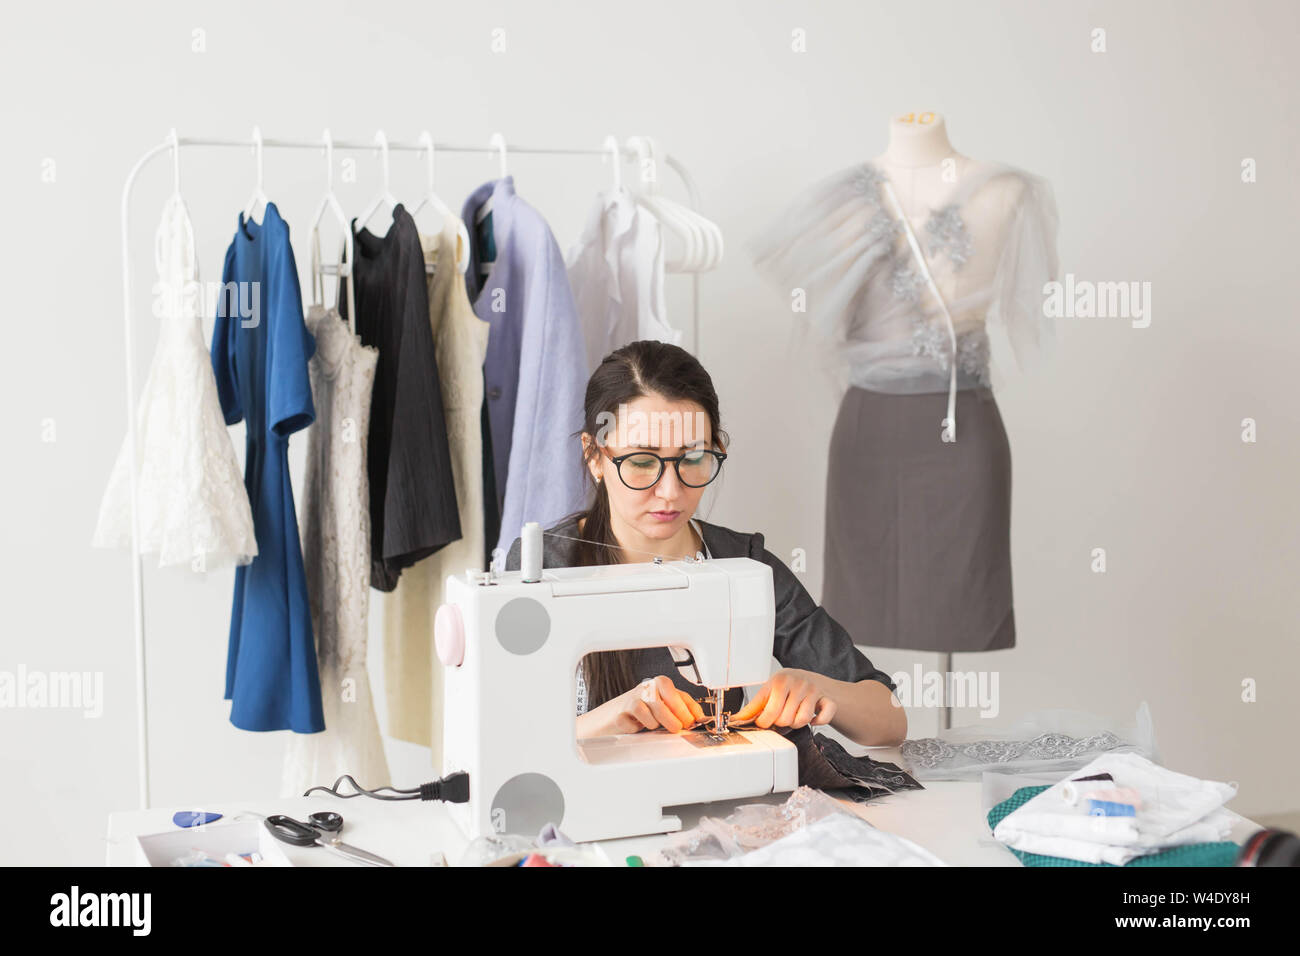 Dressmaker Tailor And Fashion Concept Smiling Female Fashion Designer Using Sewing Machine And Sitting Behind Her Desk Stock Photo Alamy